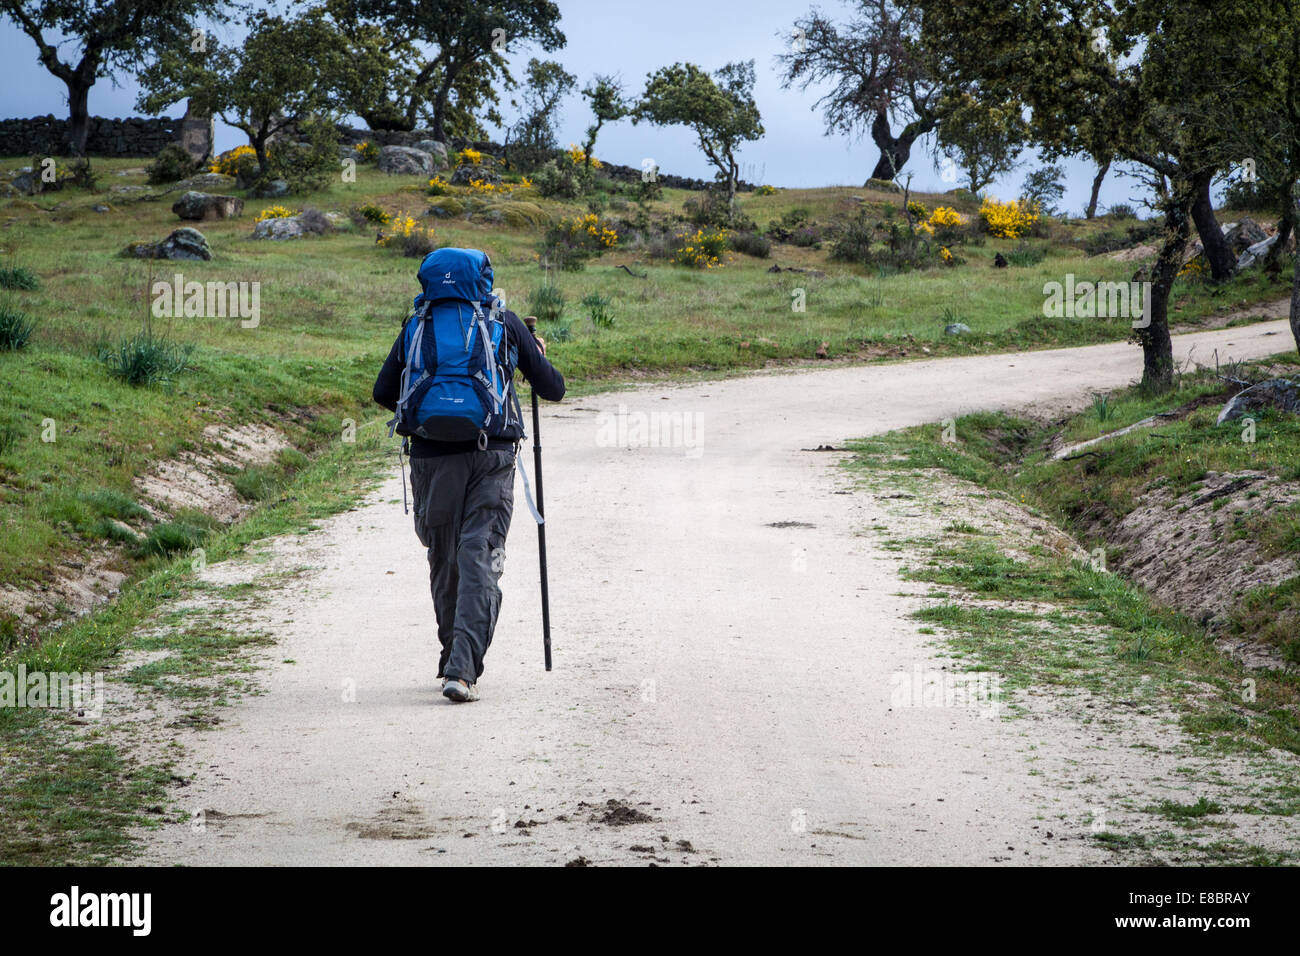 Walking the Camino to Santiago de Compostela, Spain on the Via la Plata or Silver Route - Stock Image